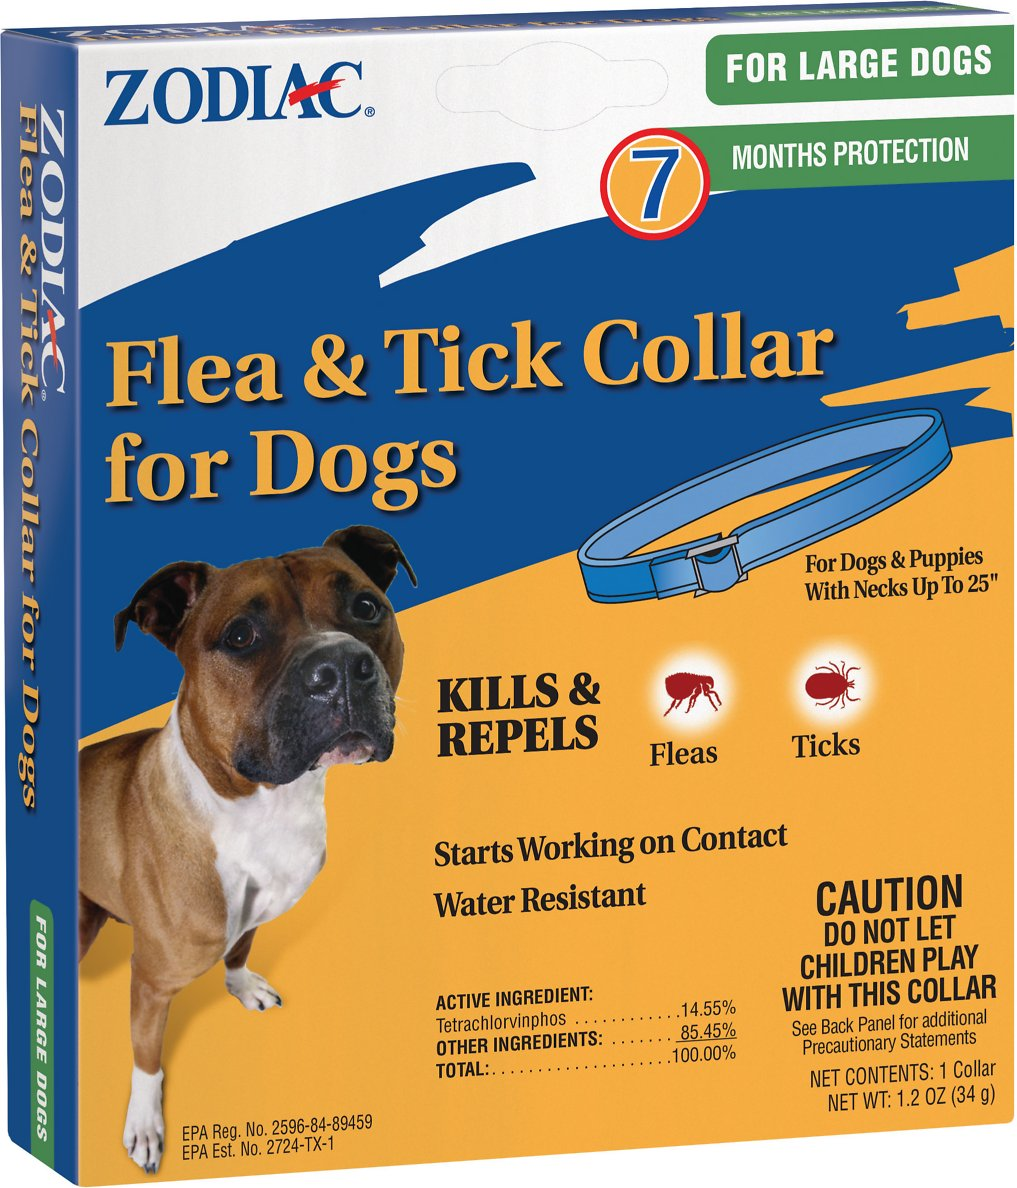 Zodiac Flea & Tick Collar for Large Dogs, 25-in Image